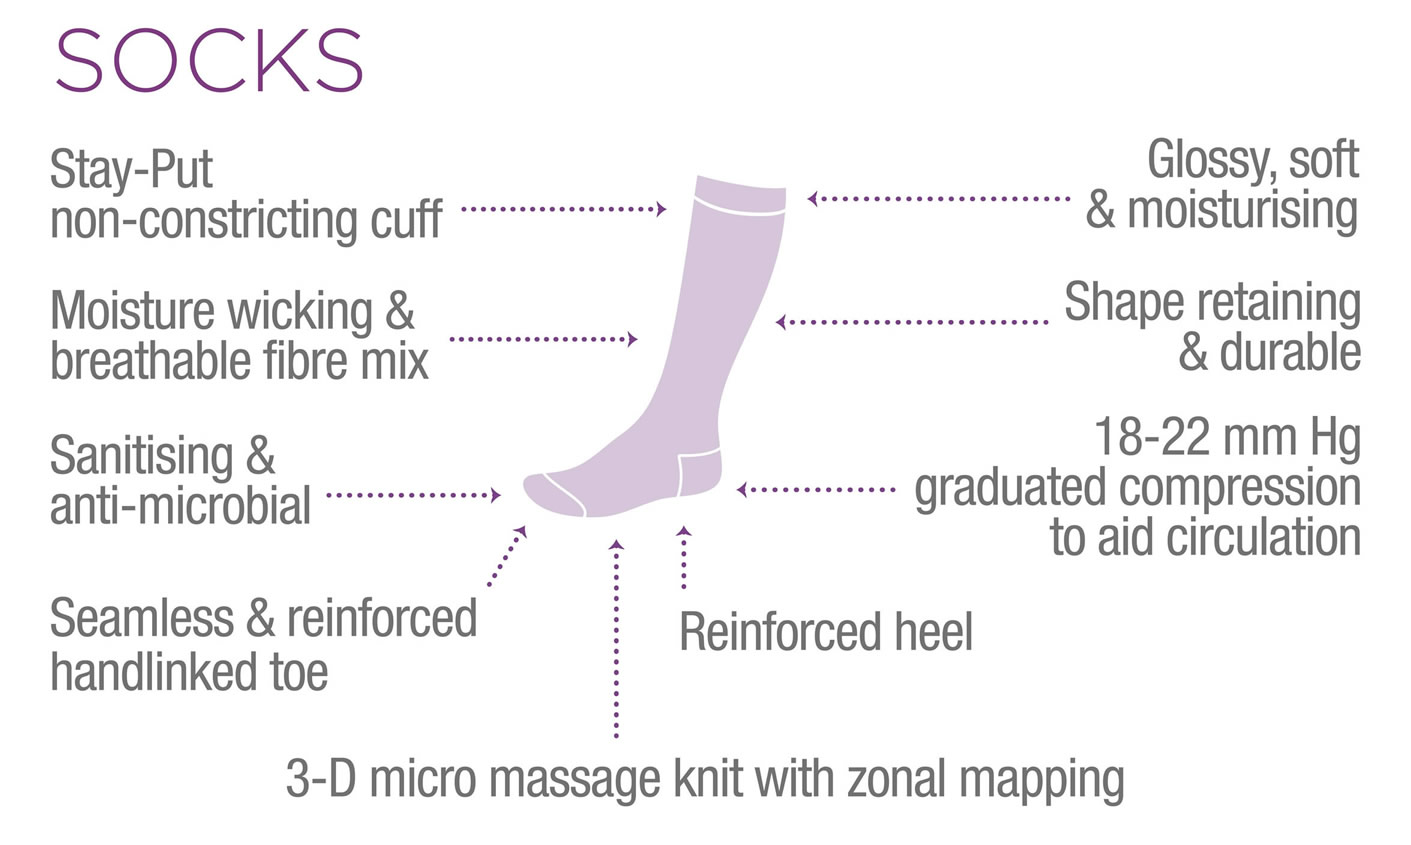 sector_maternity_Features_sock